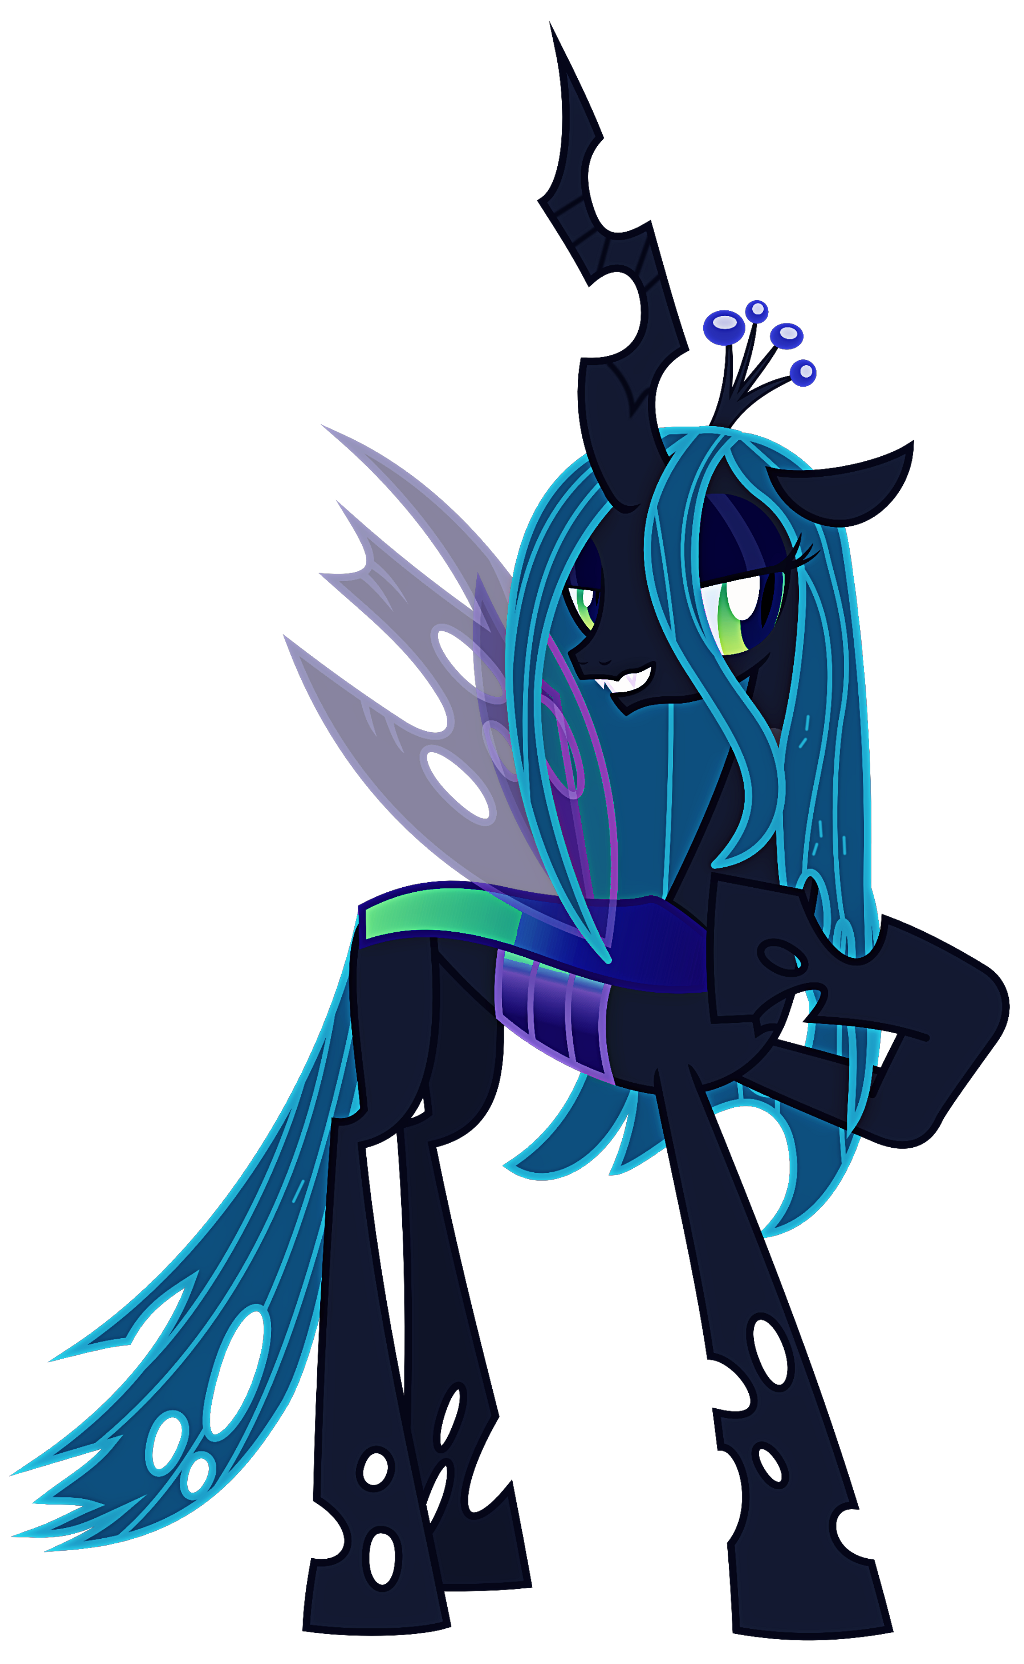 #corrupted #queenchrysalis